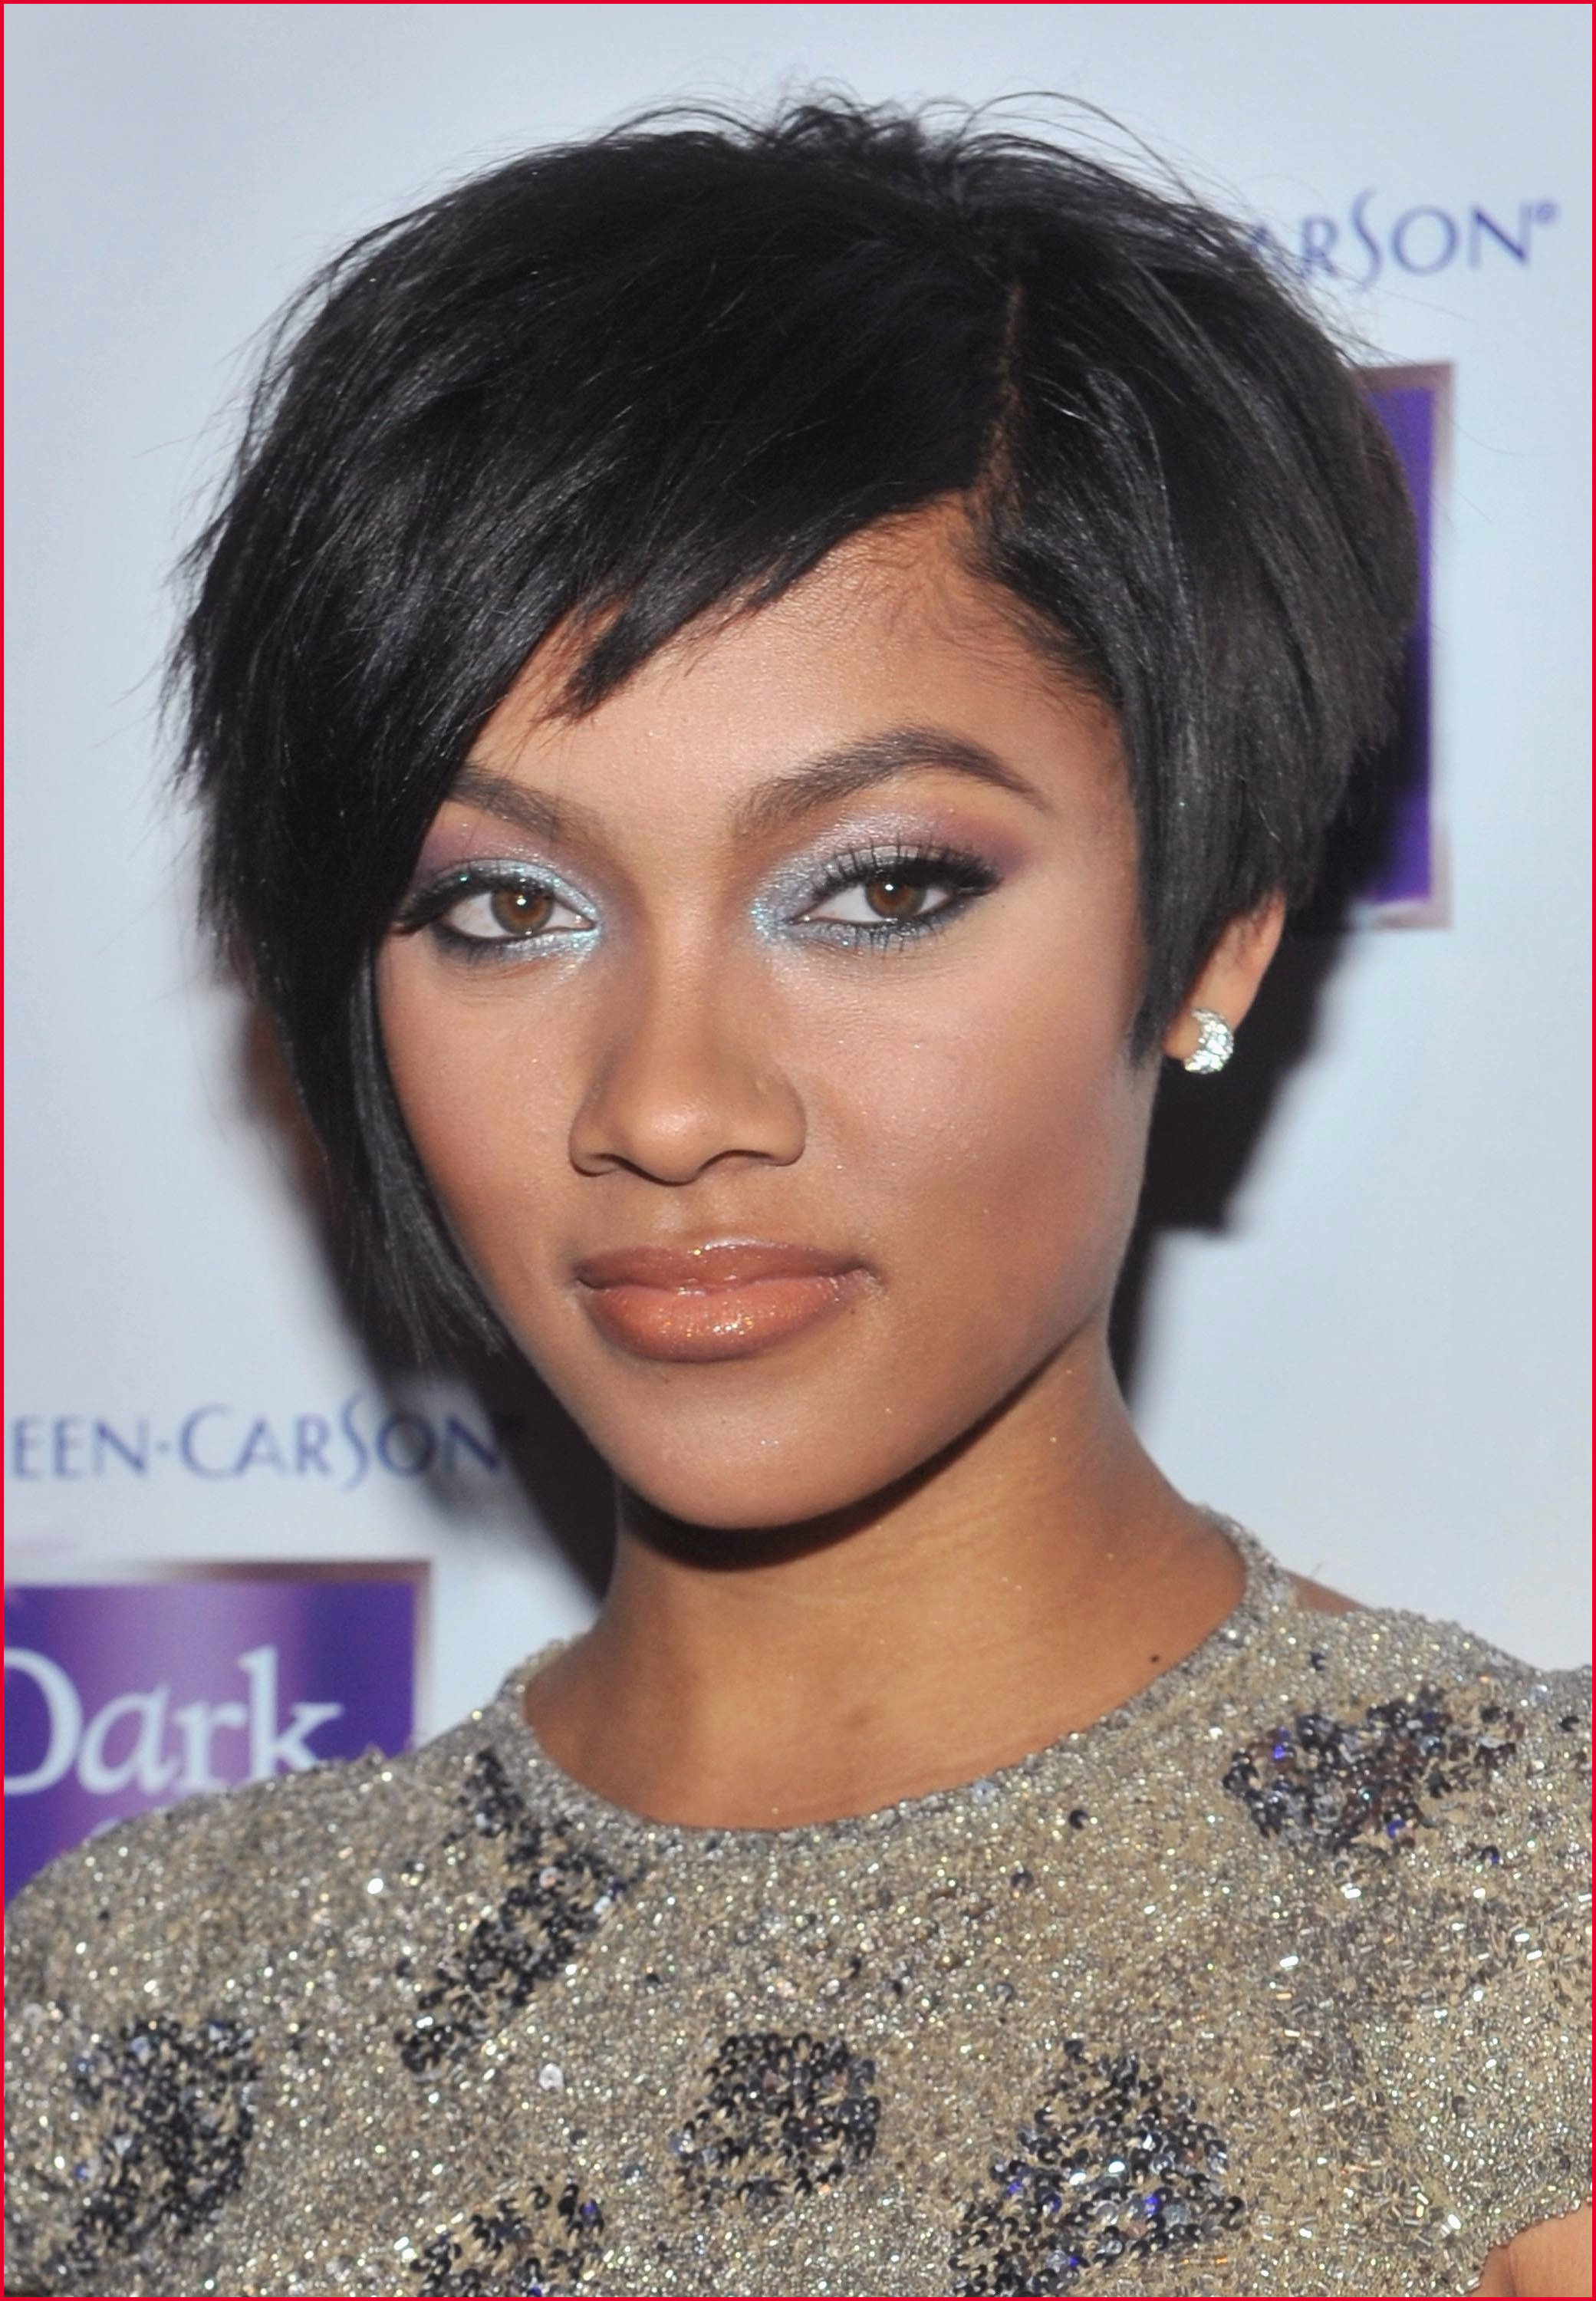 Short Hairstyles For Round Faces Black Hair 175043 Haircut Short For Short Haircuts For Black Women Round Face (View 17 of 25)